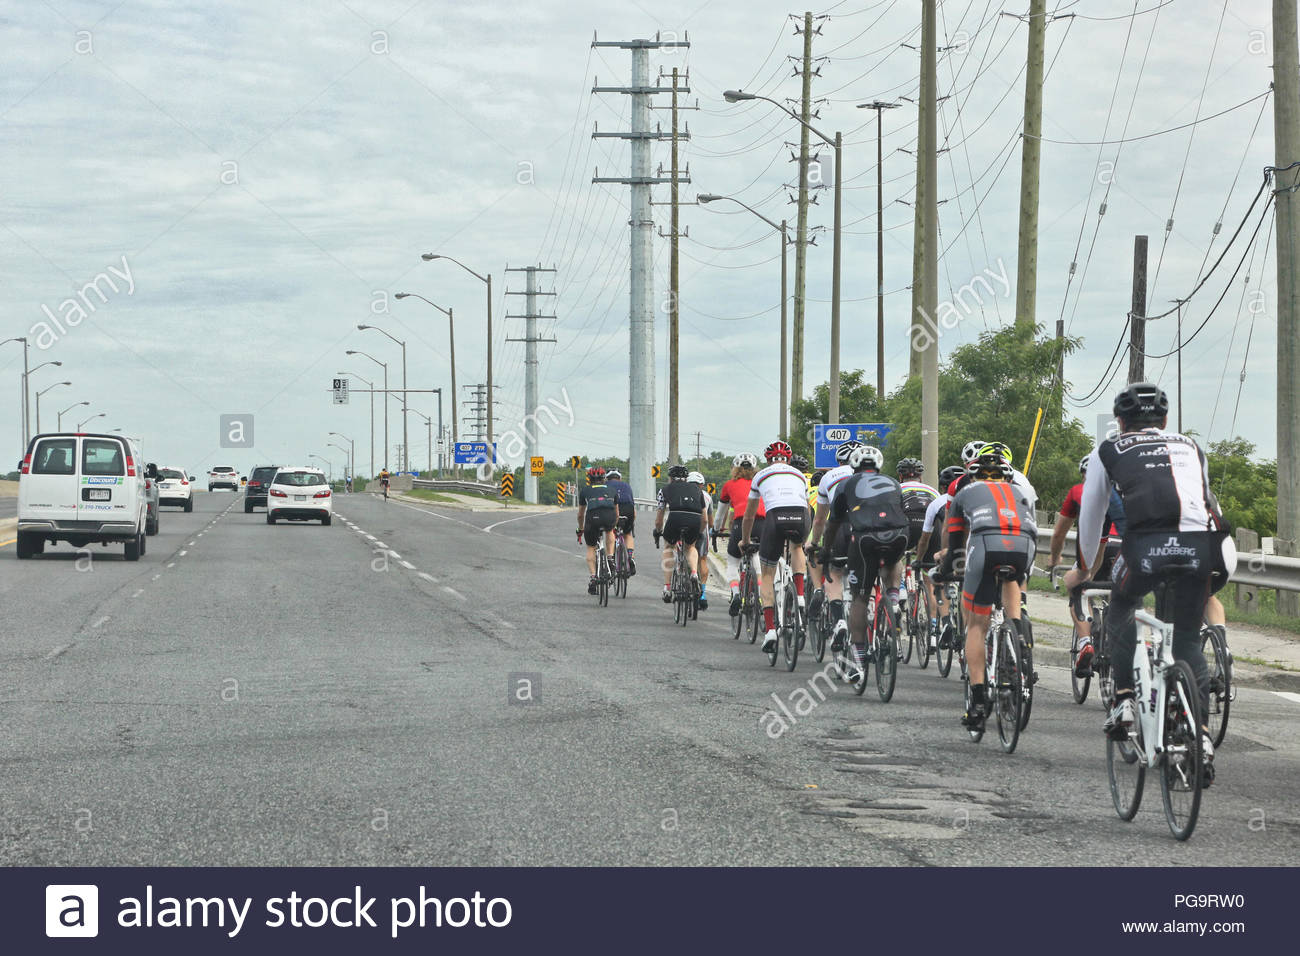 A group of bicyclists travel along a busy road in Toronto, Ontario, Canada. - Stock Image